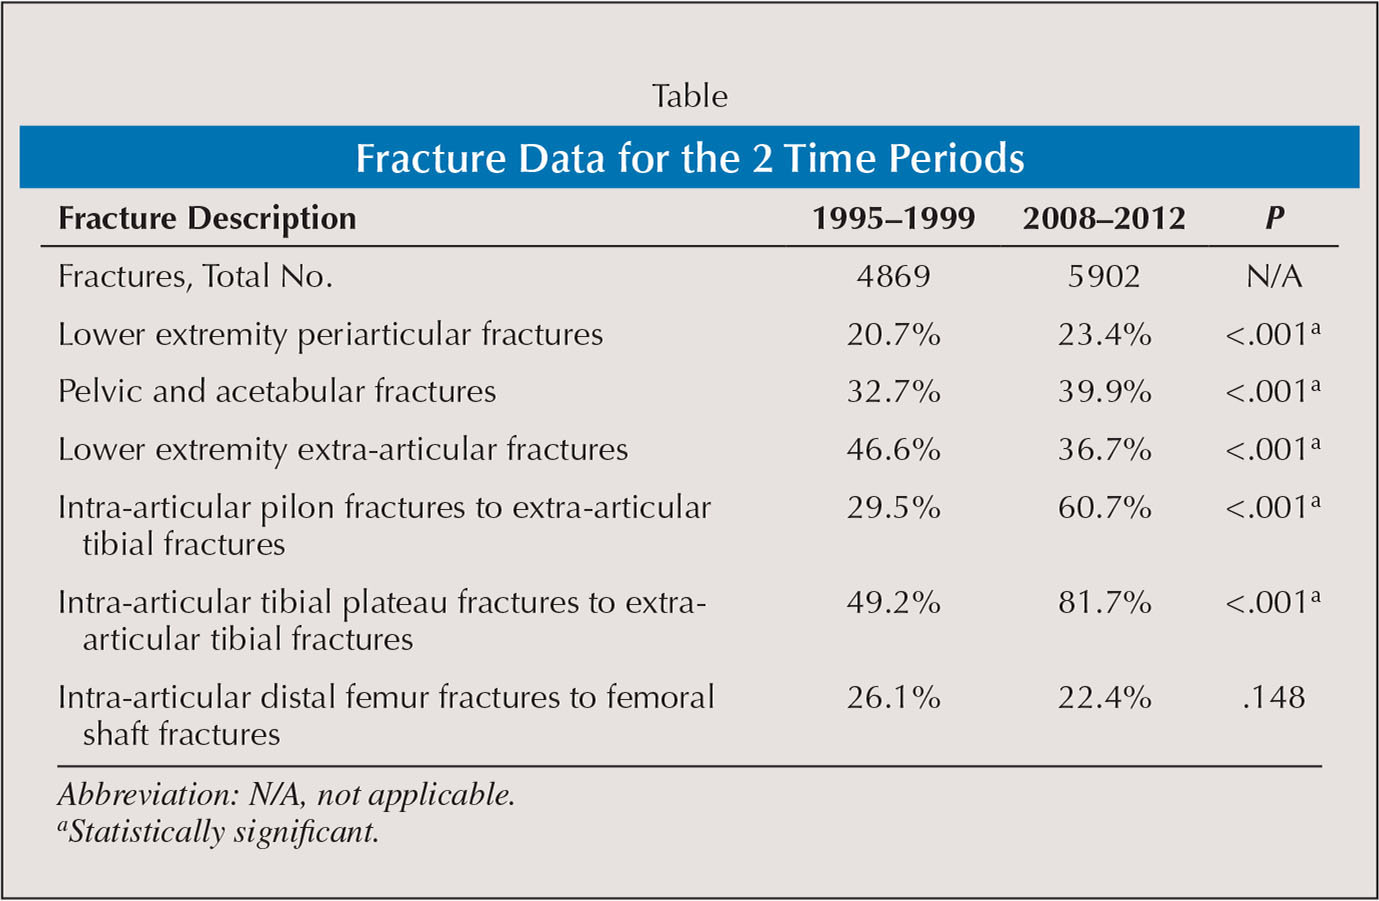 Fracture Data for the 2 Time Periods